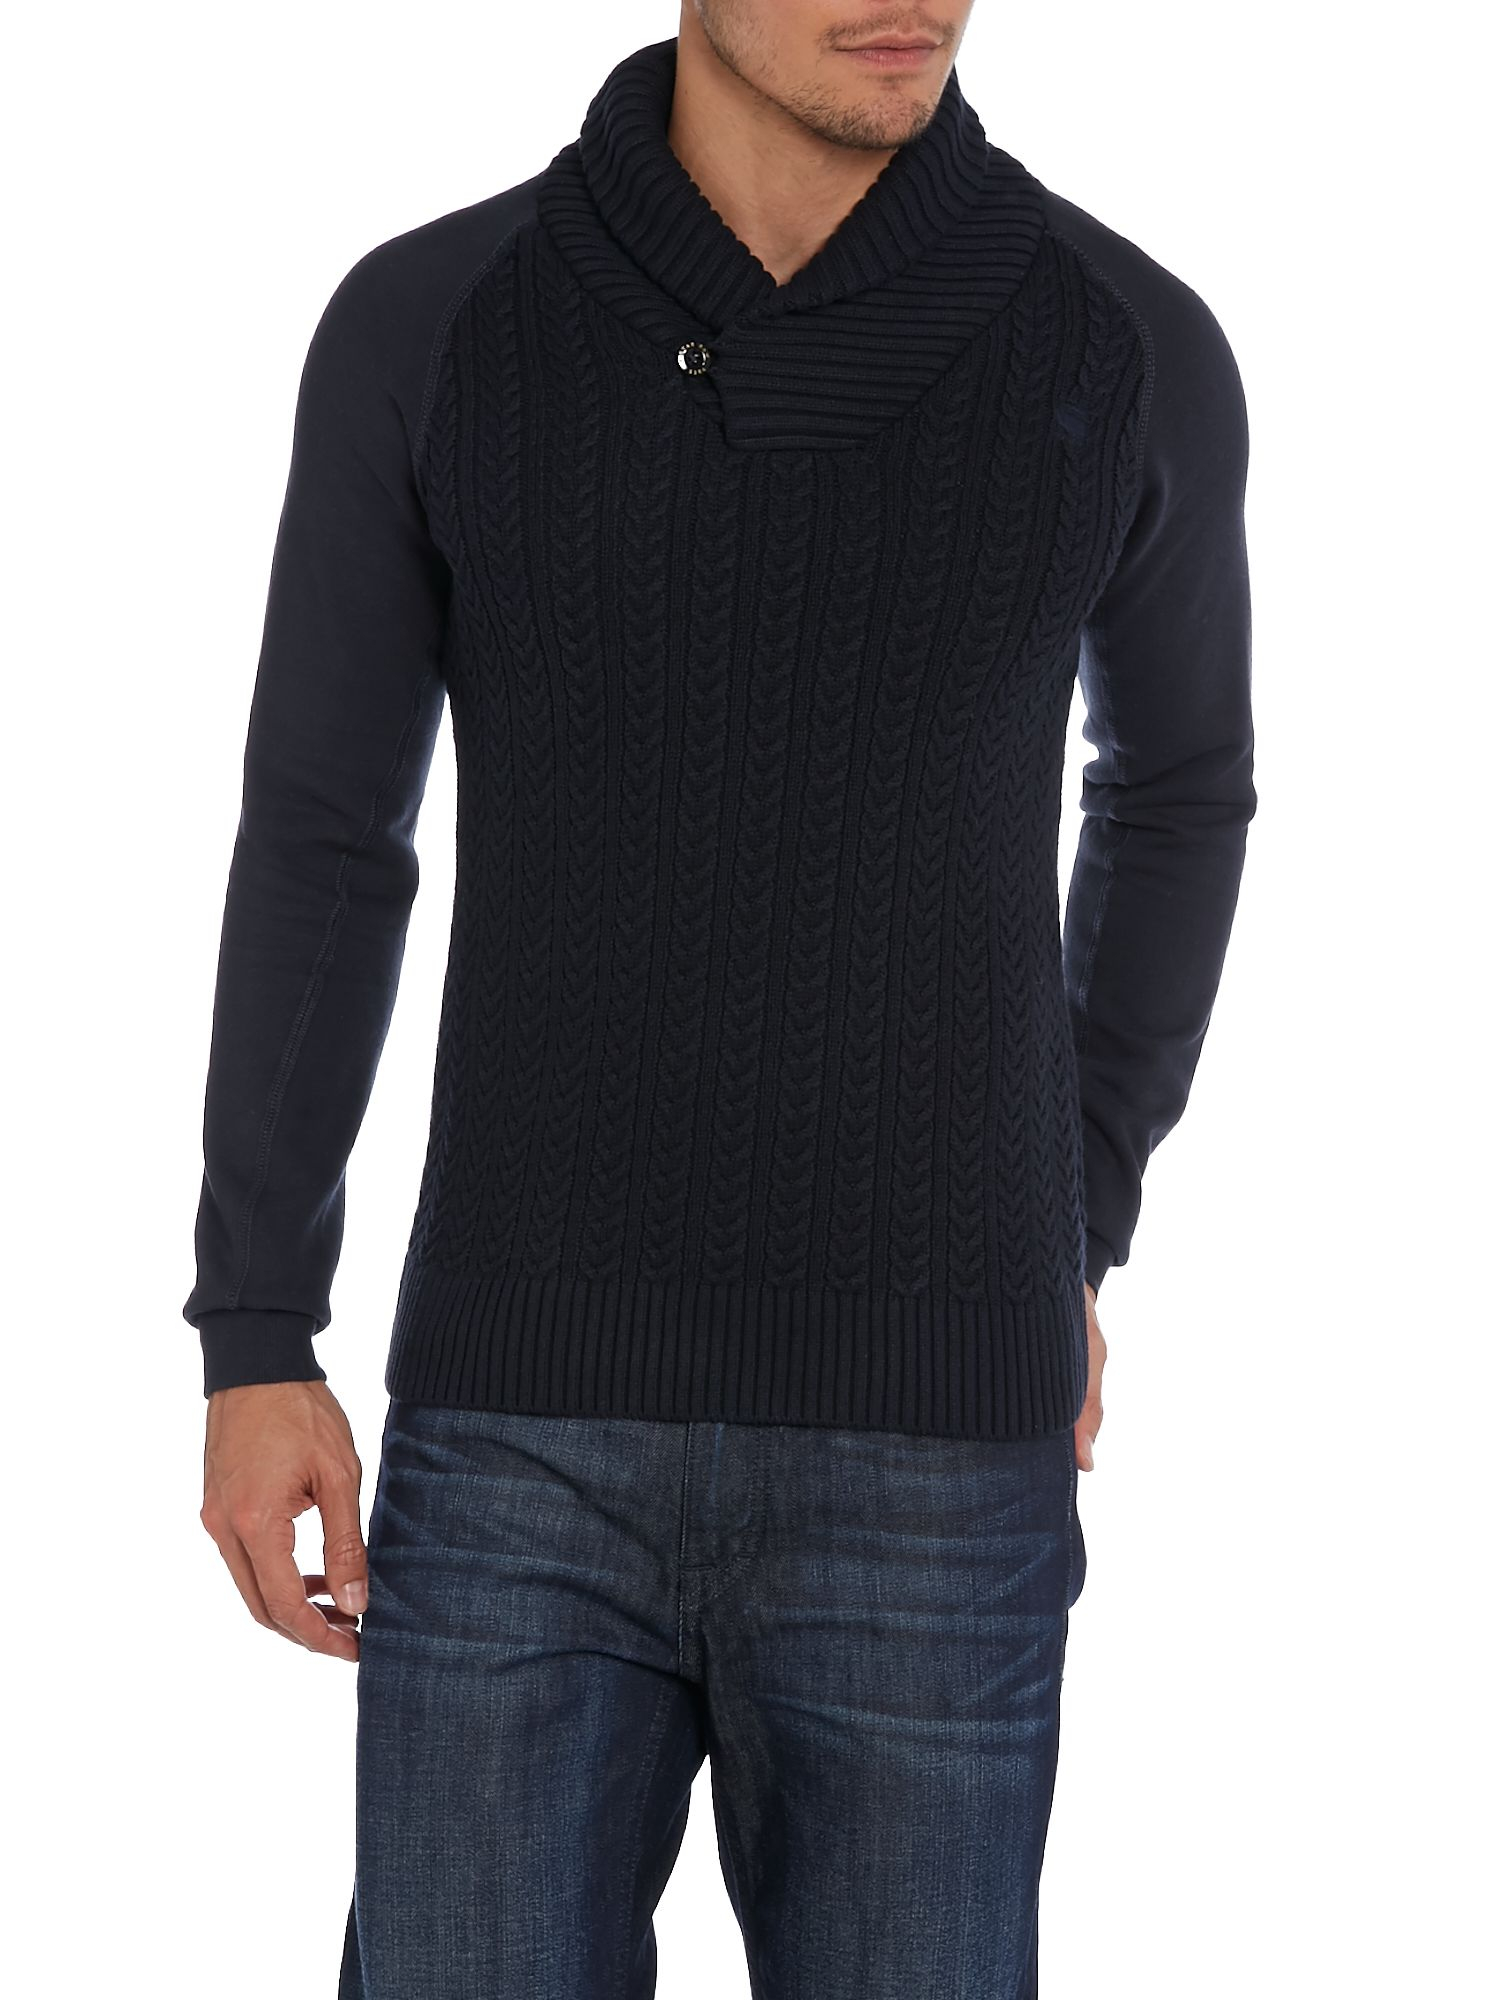 g star raw shawl collar cable knit jumper in blue for men lyst. Black Bedroom Furniture Sets. Home Design Ideas